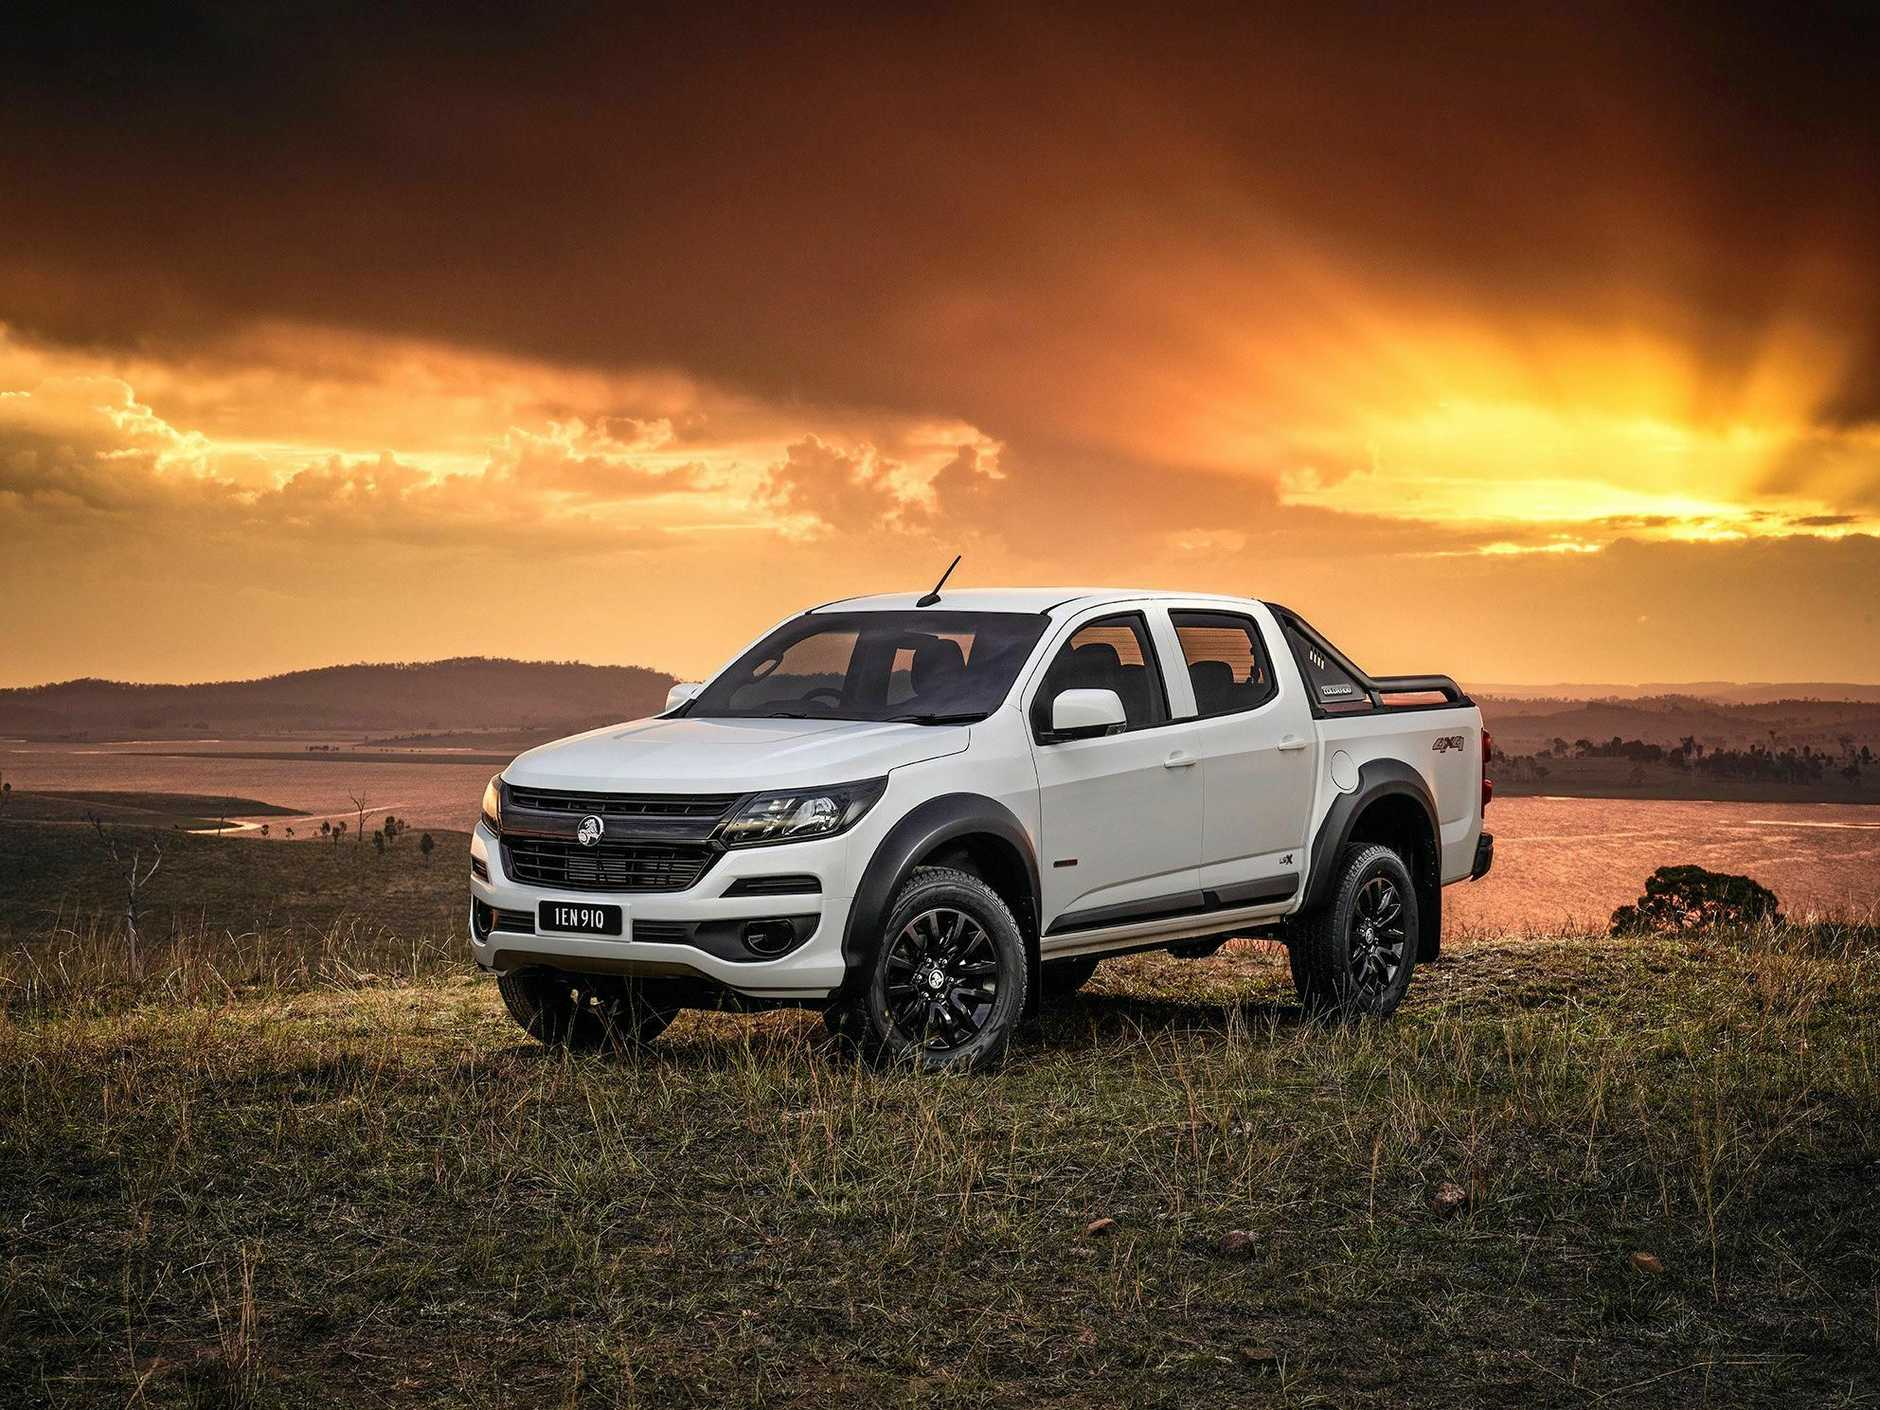 The Holden Colorado LSX is priced from $44,990 drive-away.